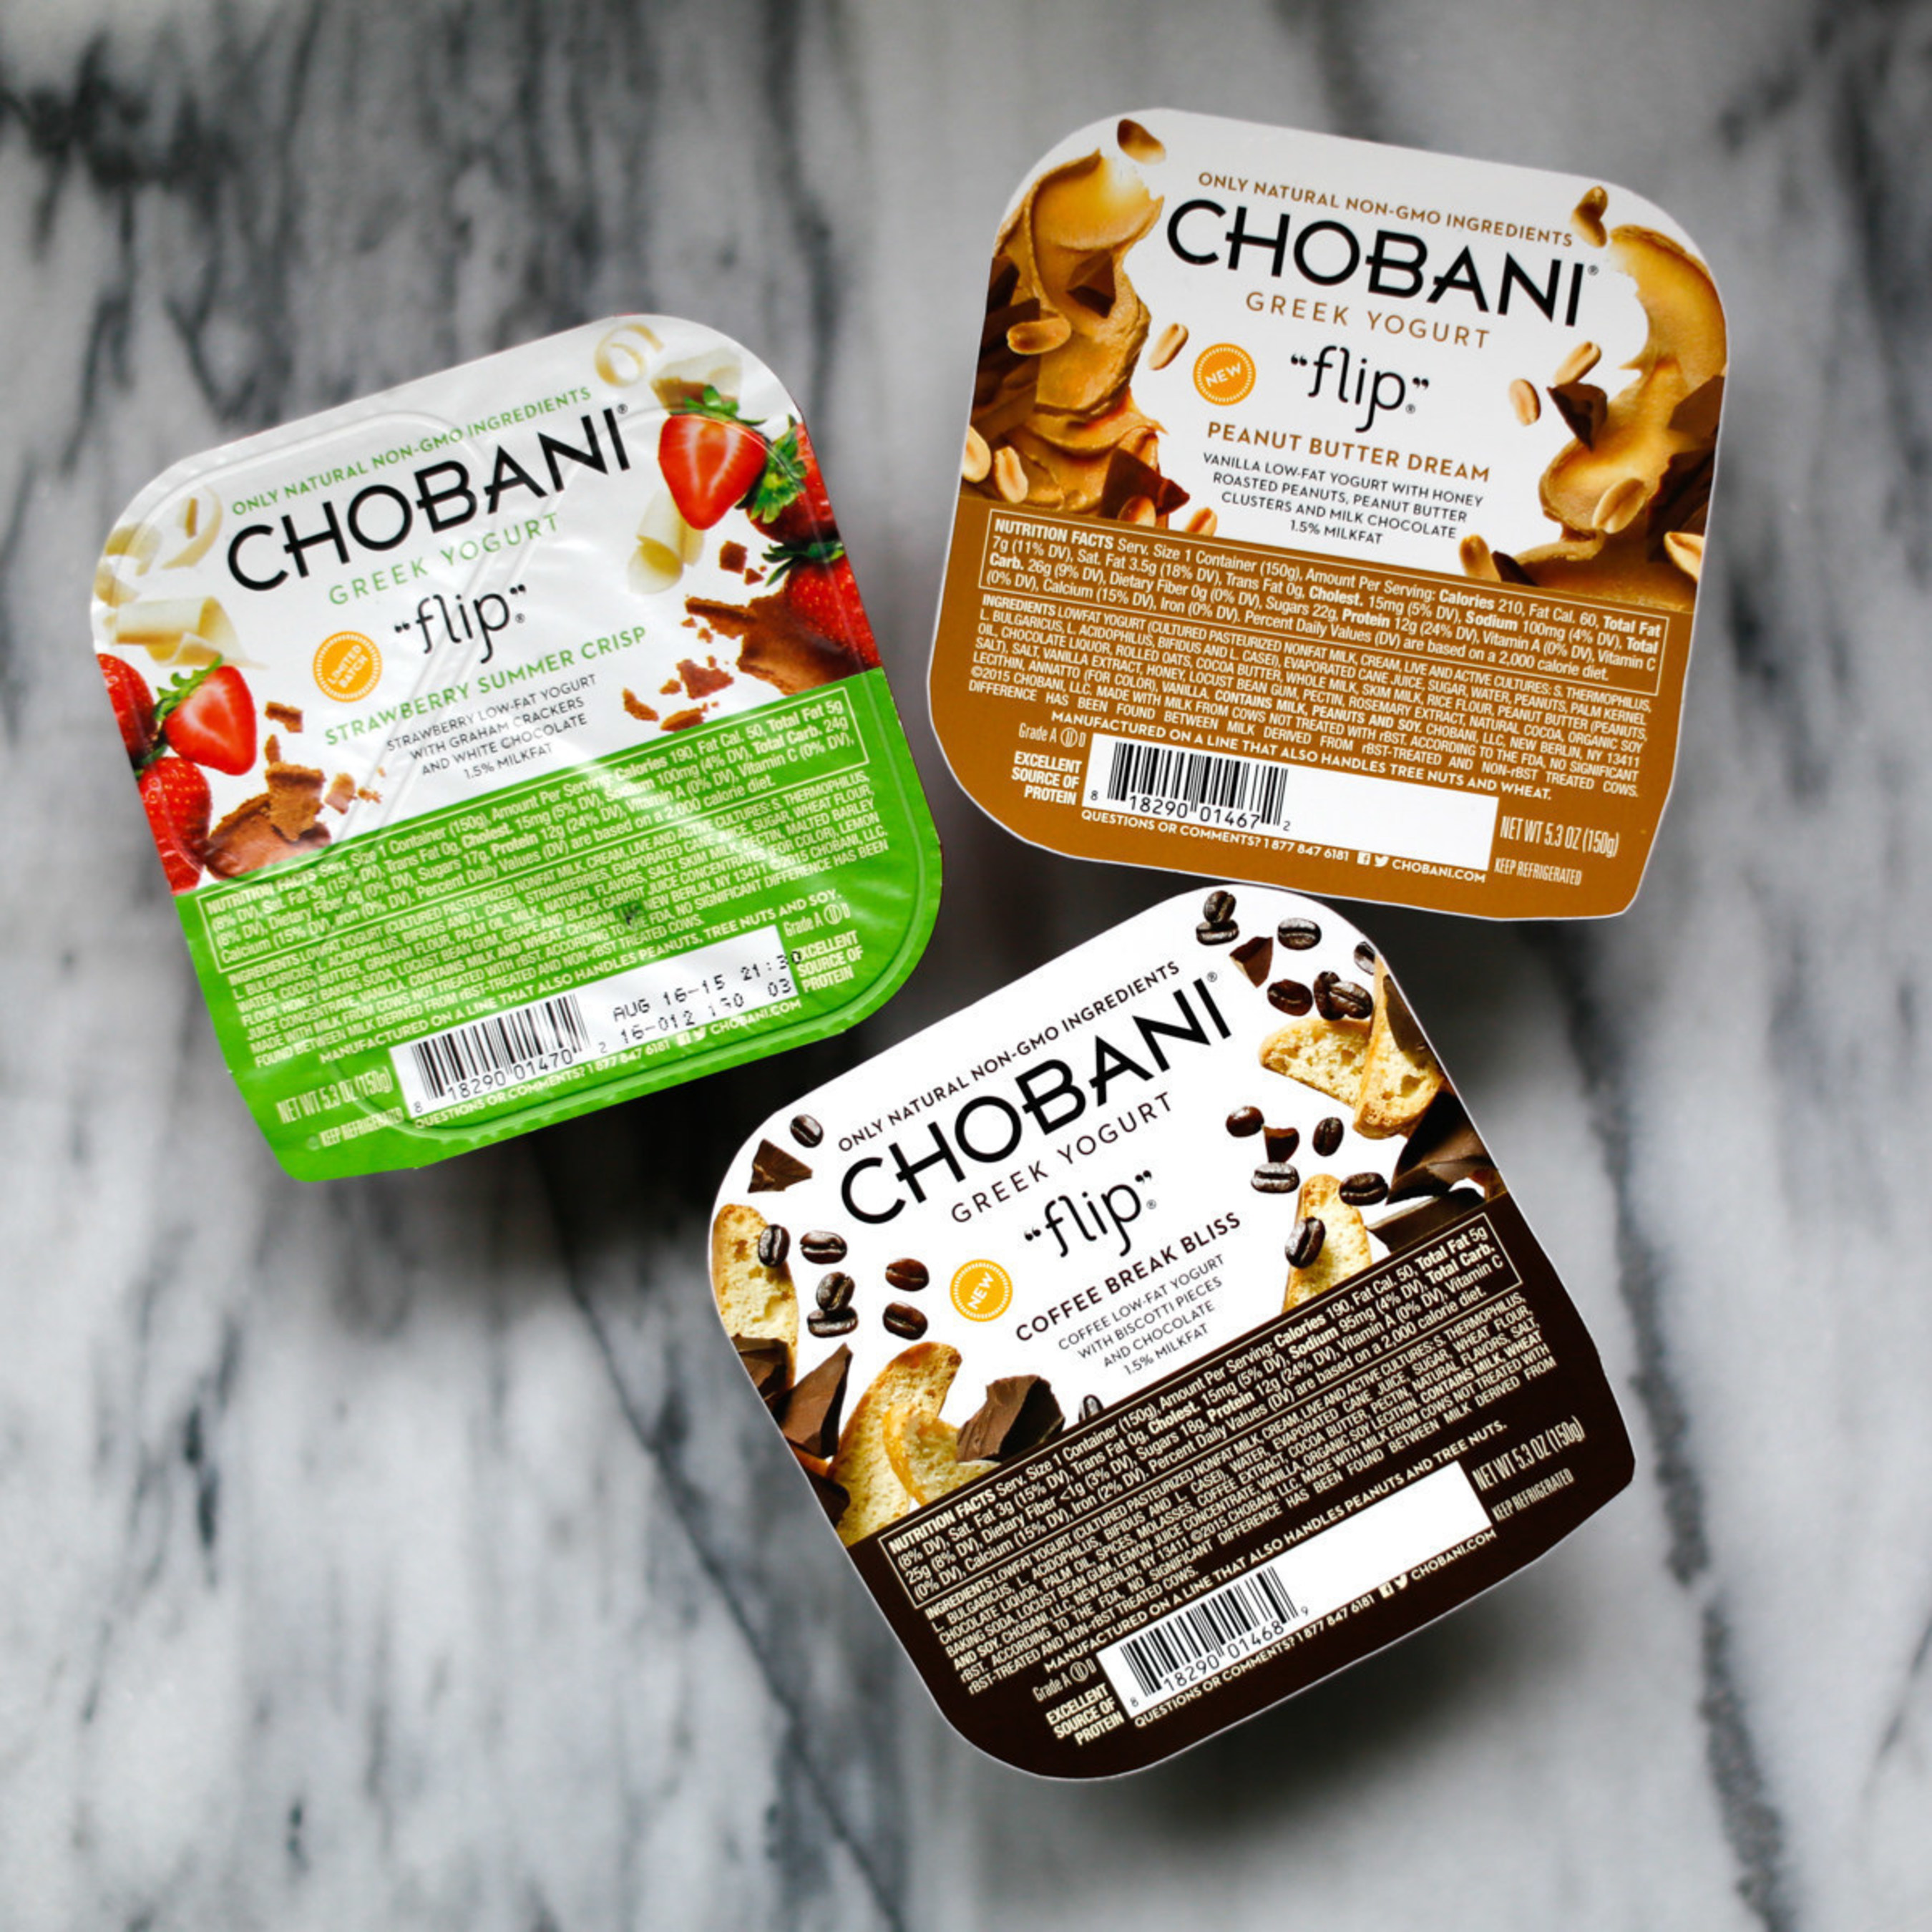 Chobani, America's No. 1-selling Greek Yogurt brand, introduces three new Chobani Flip products as part of its largest portfolio expansion to-date. Introducing Peanut Butter Dream, Coffee Break Bliss and Limited Batch Strawberry Summer Crisp.